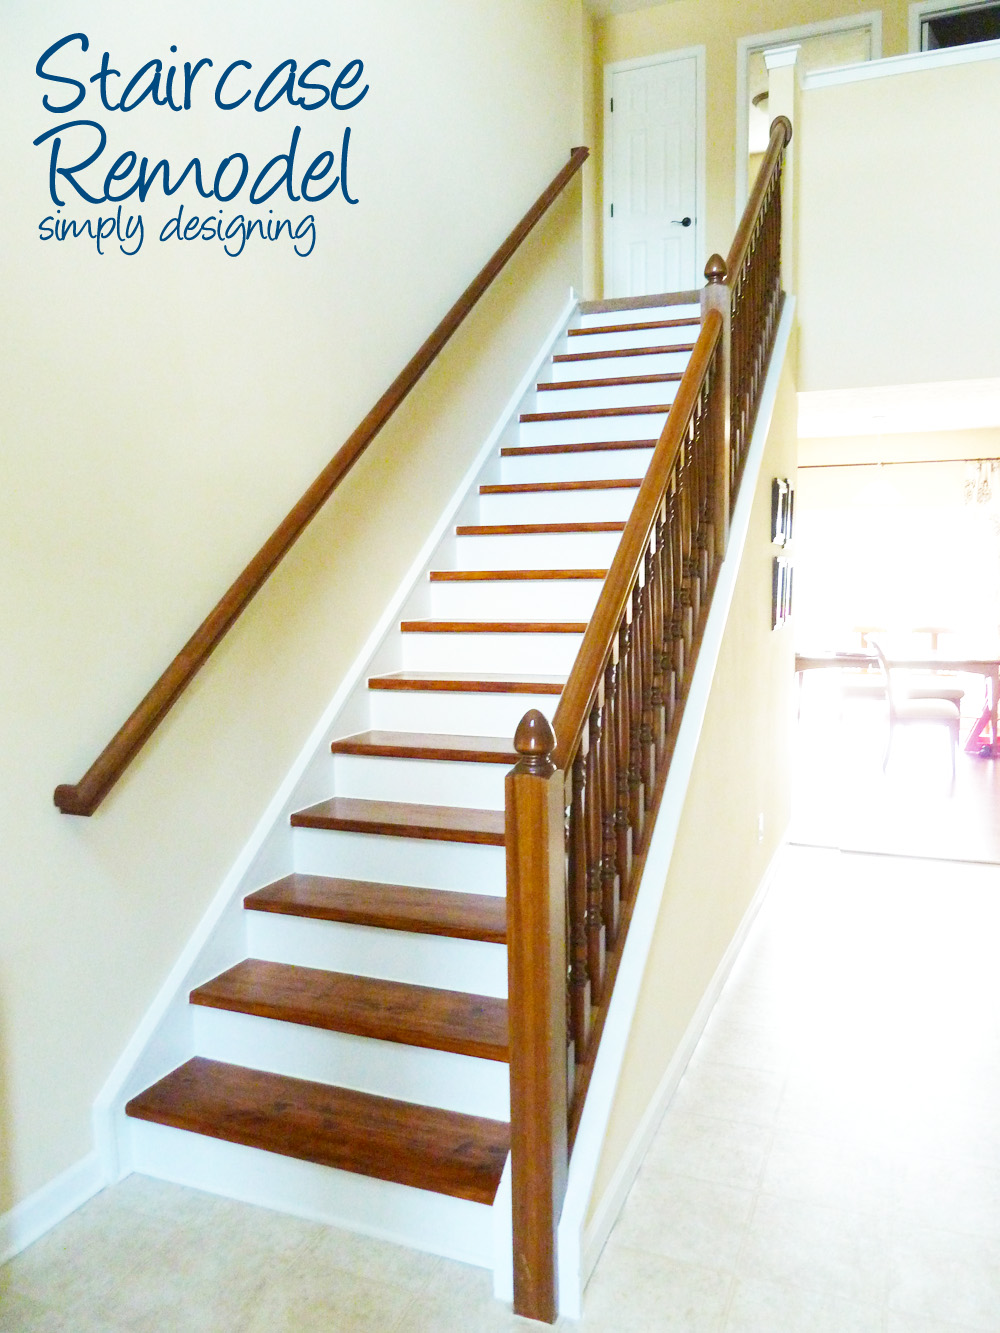 Superieur Staircase Remodel | Step By Step Instructions On How To Rip Up Carpet And  Refinish Wood